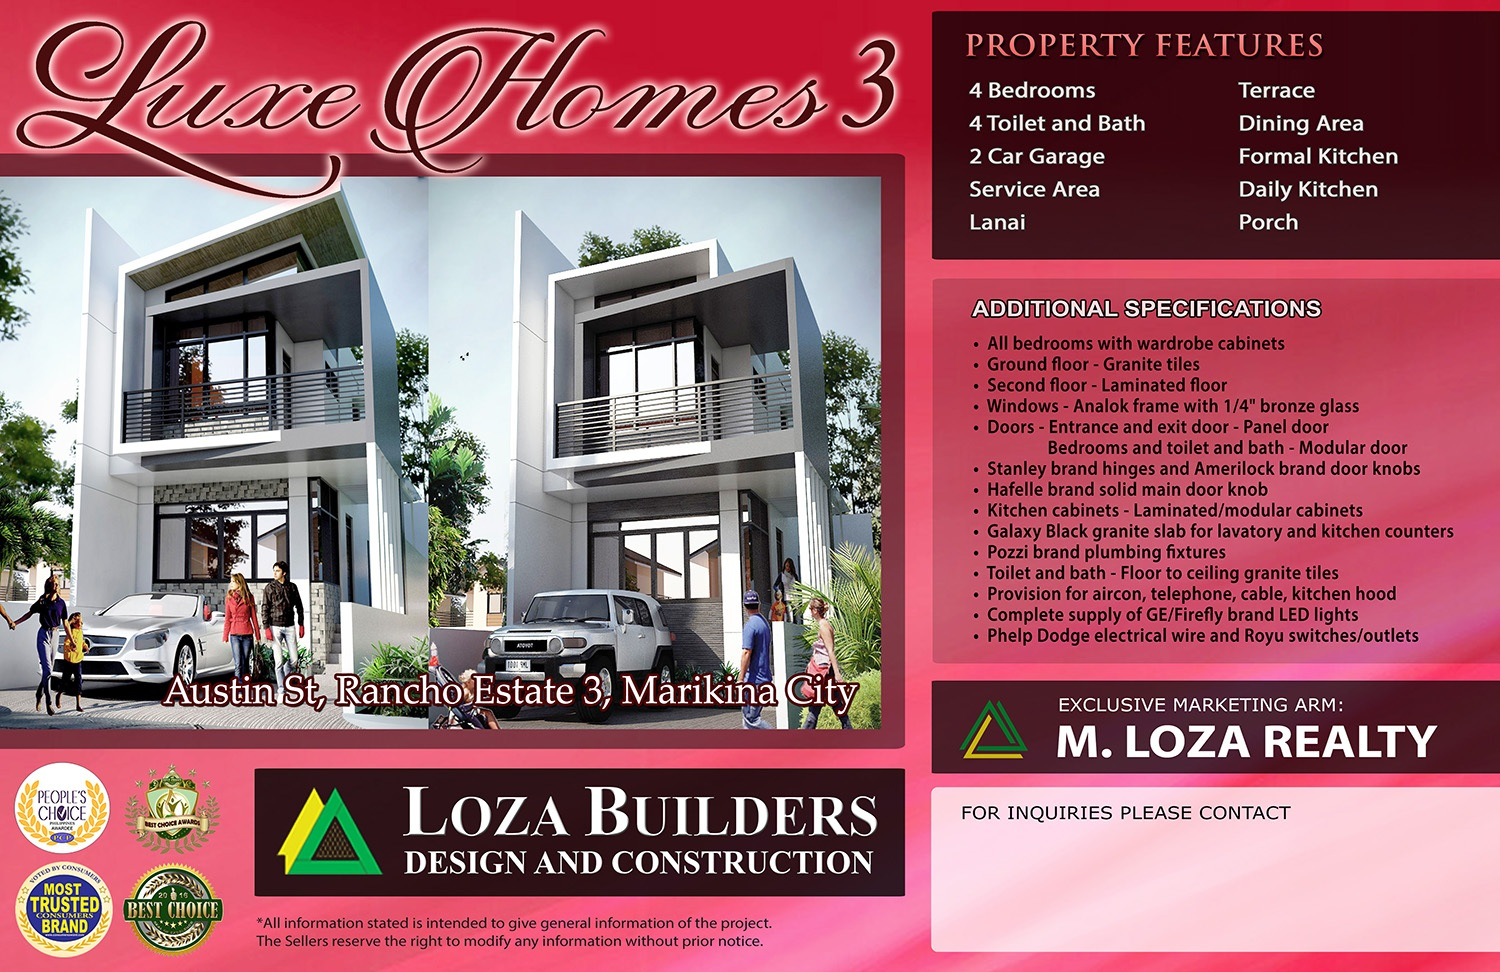 luxe-homes-3